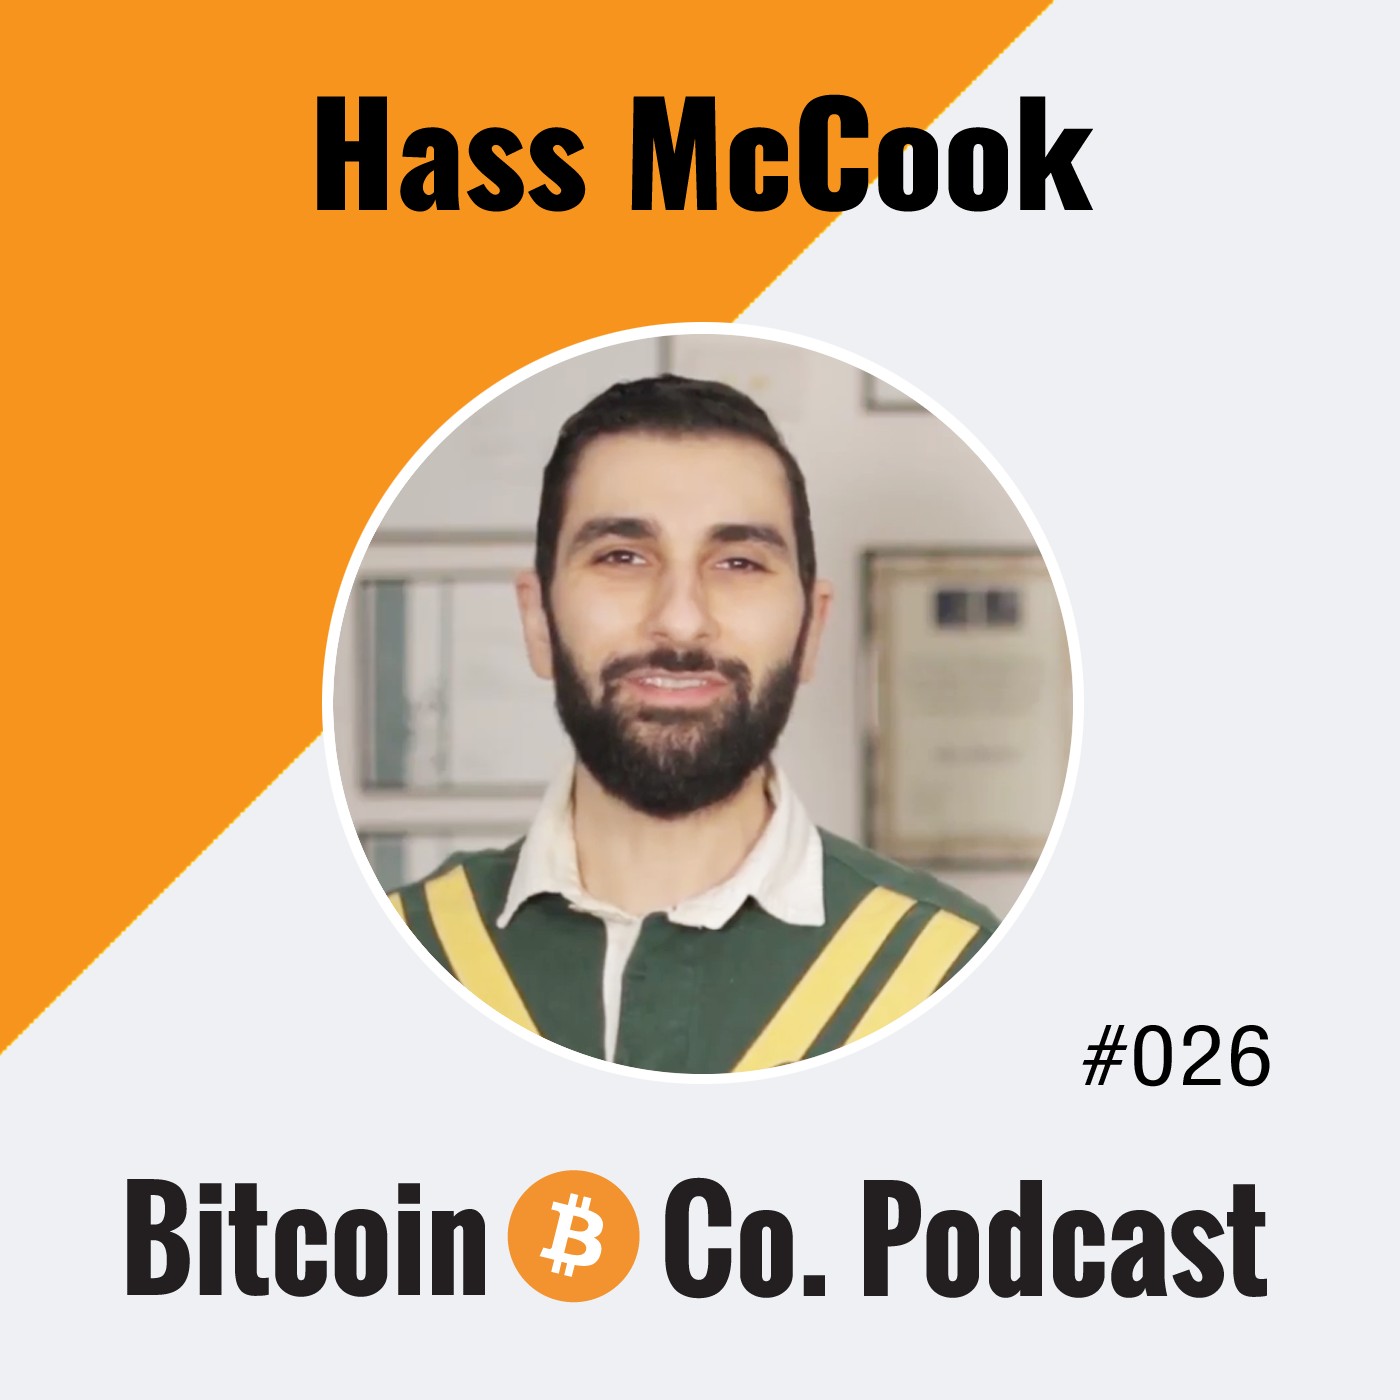 Hass McCook Emissions vs. Energy Use of Bitcoin